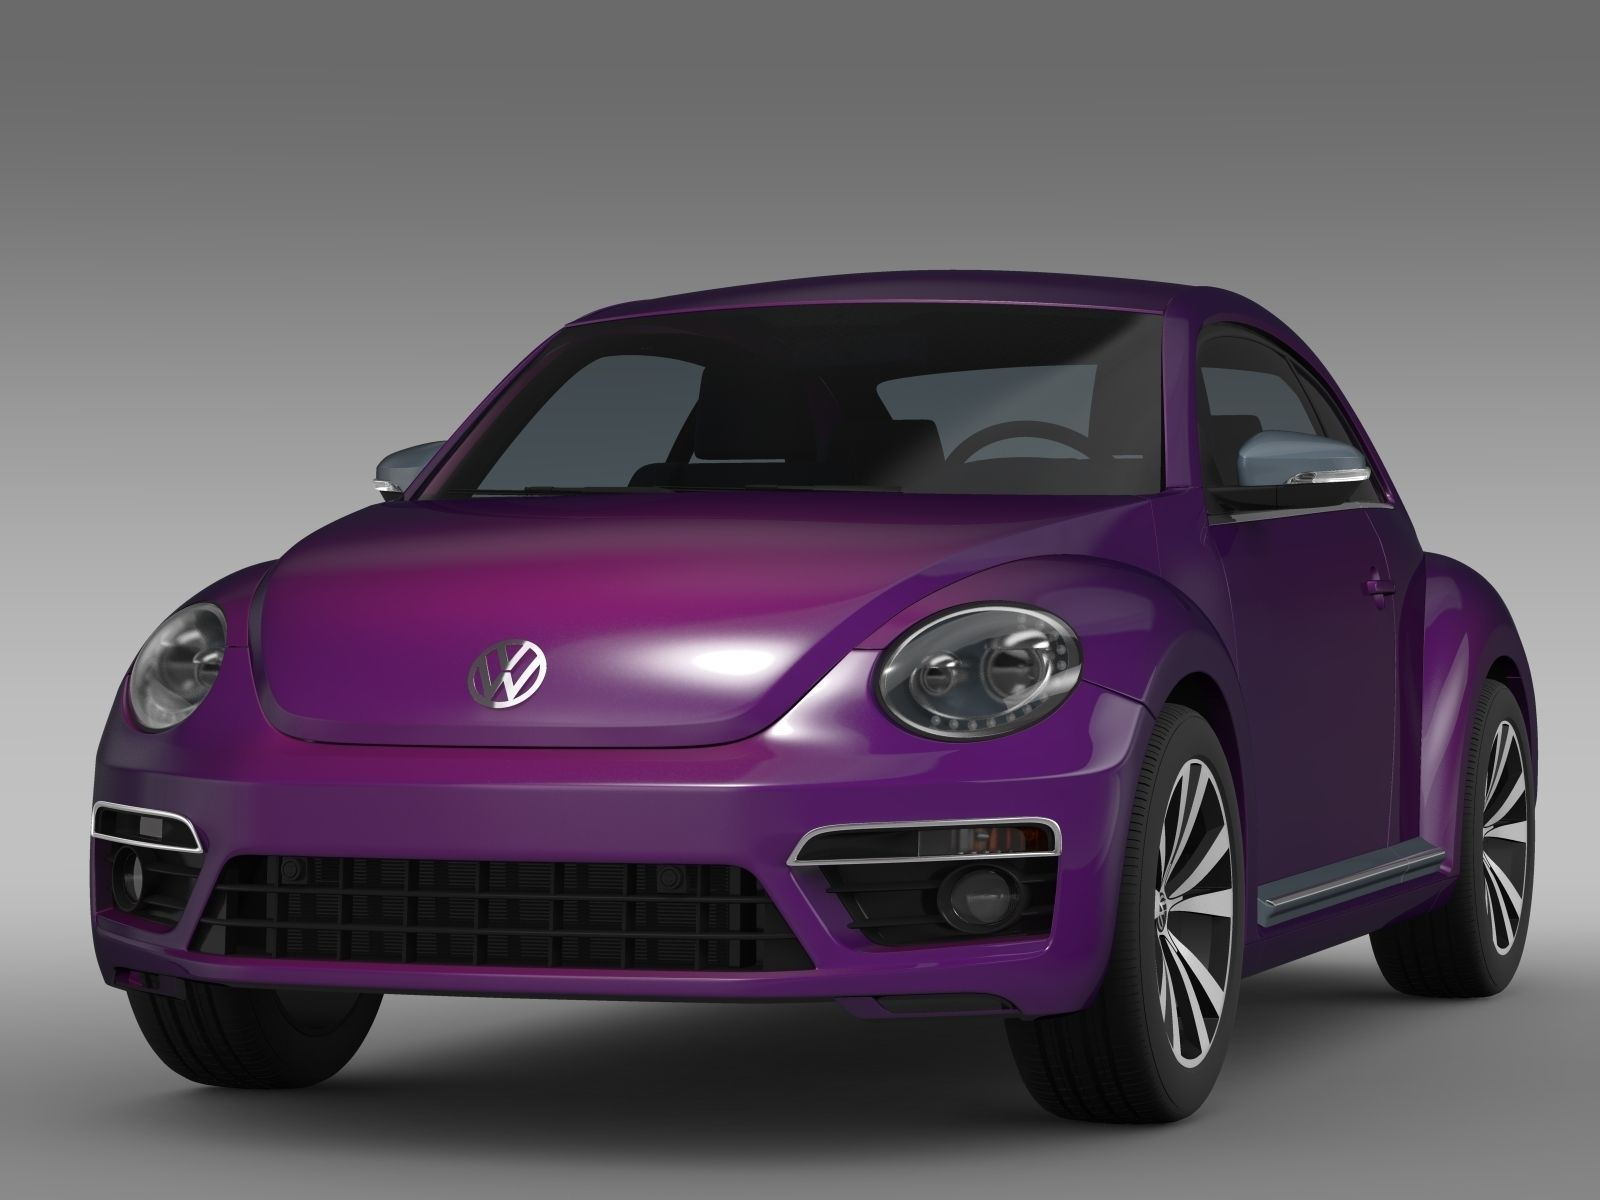 vw beetle pink edition concept 2015 3d model max obj 3ds. Black Bedroom Furniture Sets. Home Design Ideas